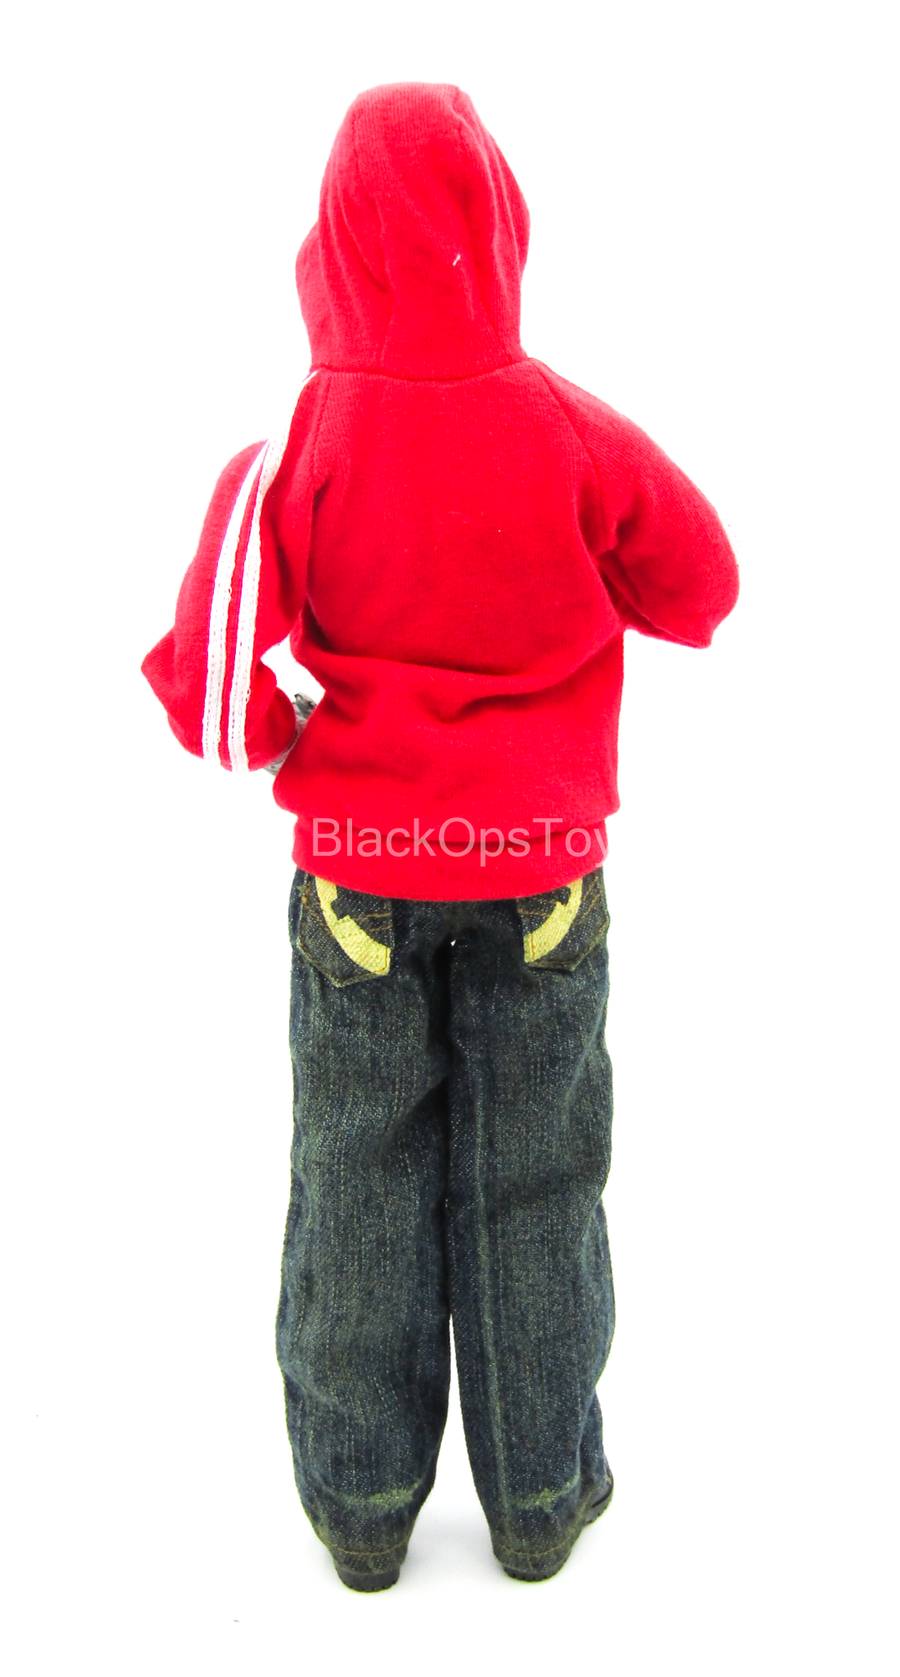 Red Hooded Jacket w/Denim Like Jeans, Face Mask & Boots